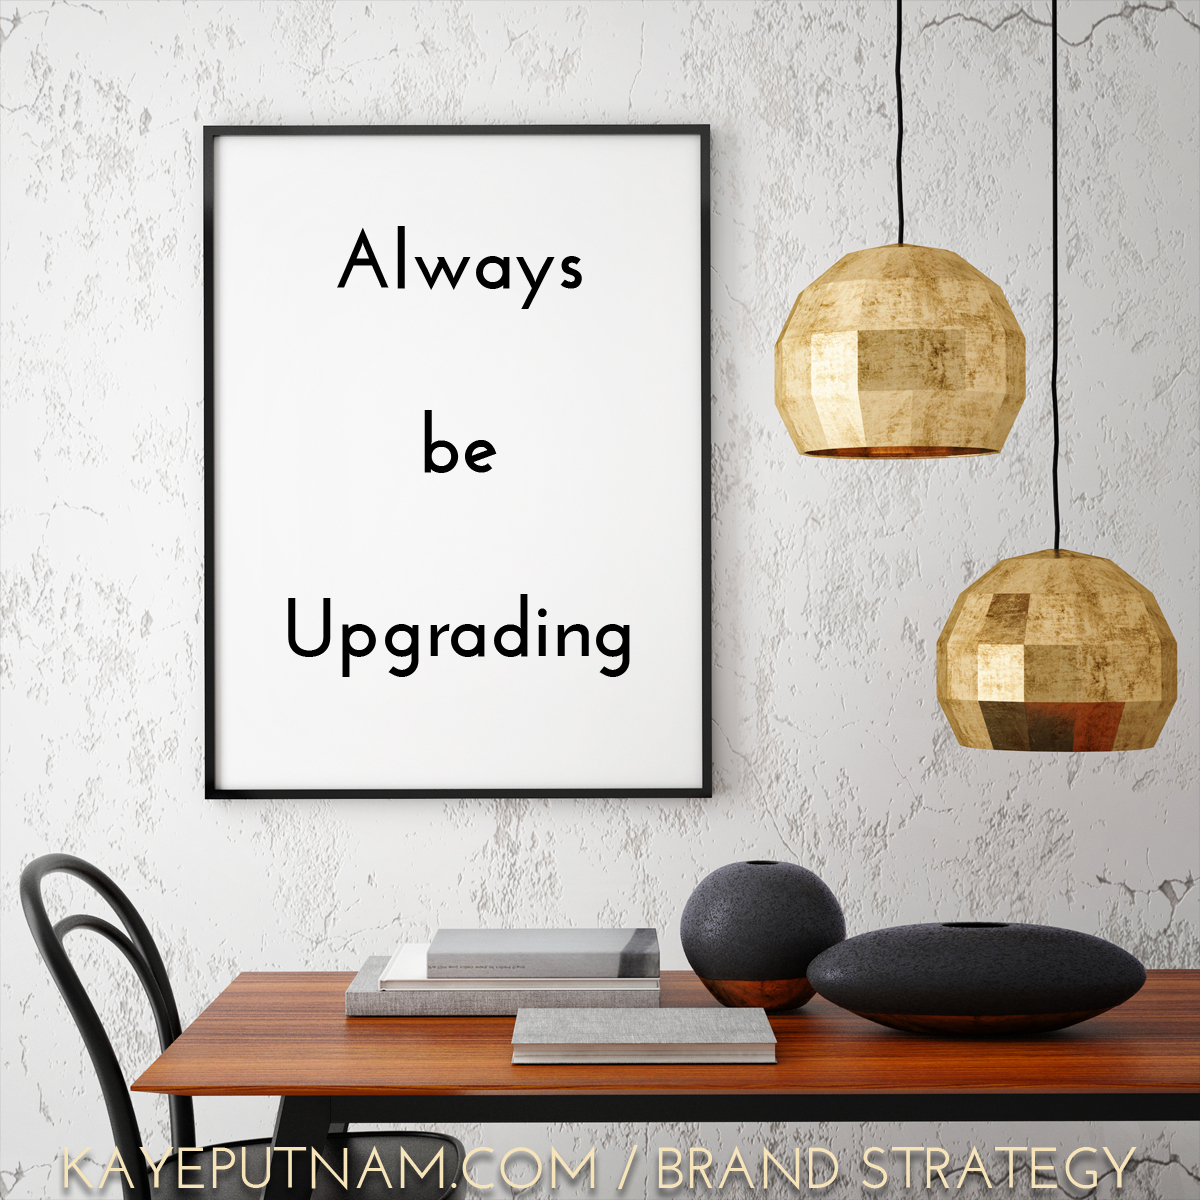 Always be upgrading. #InDemandBrand